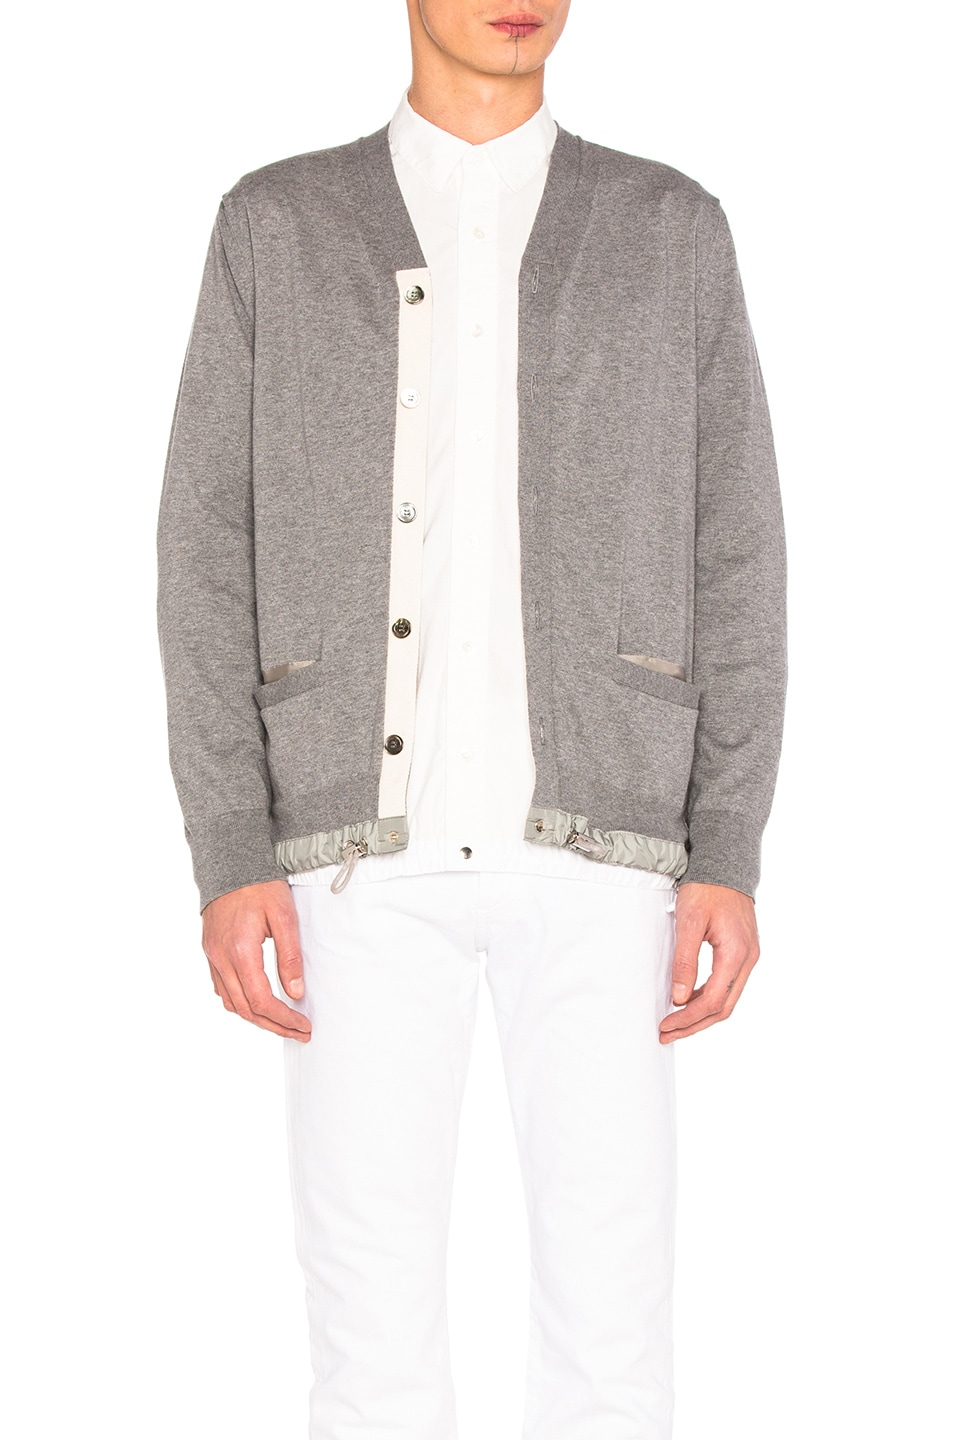 df7e178b68 Image 1 of Sacai Cotton Cashmere Knit Cardigan in Light Grey